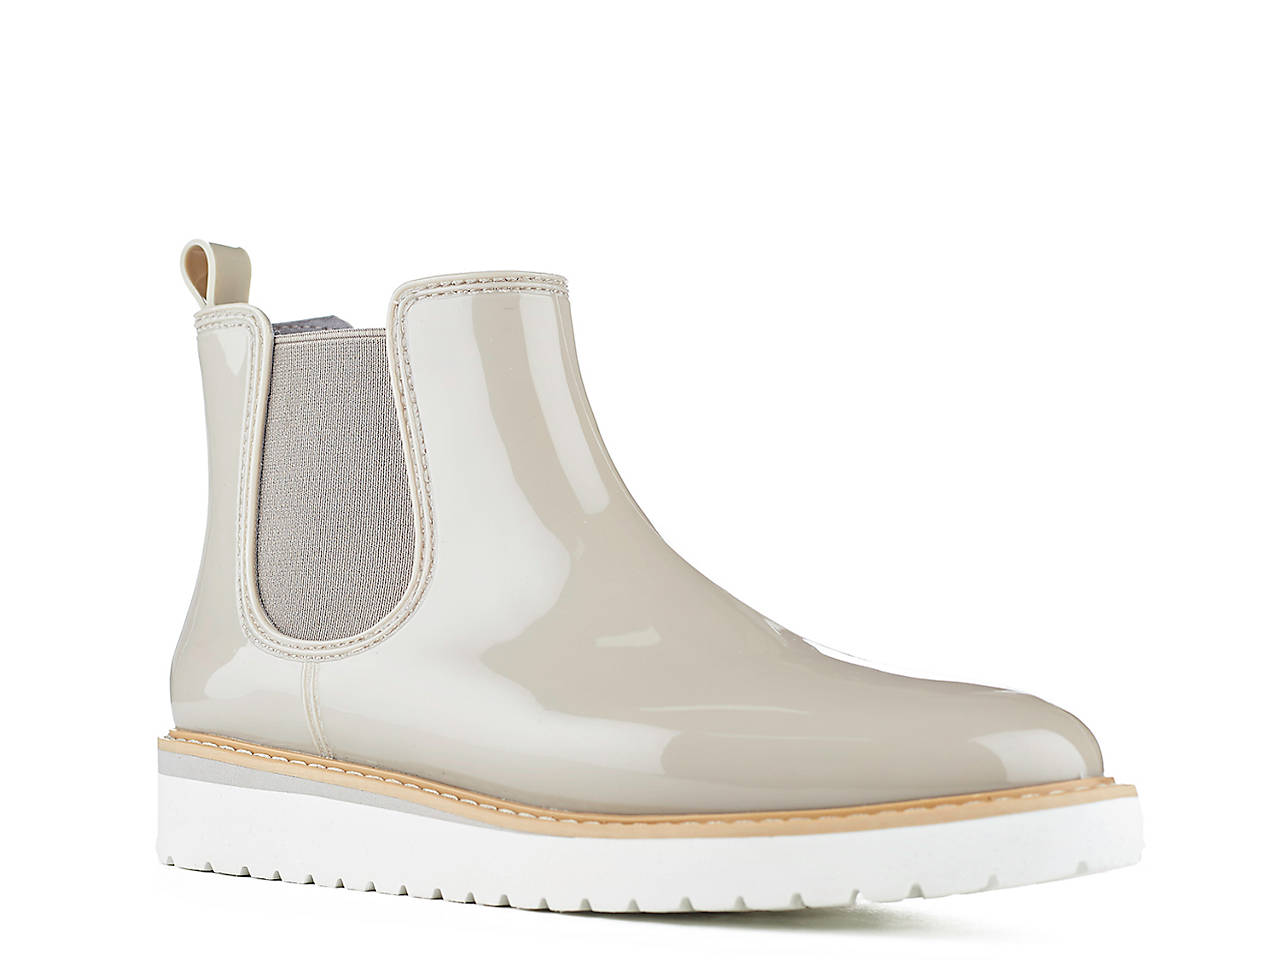 Grey shiny ankle rain boots